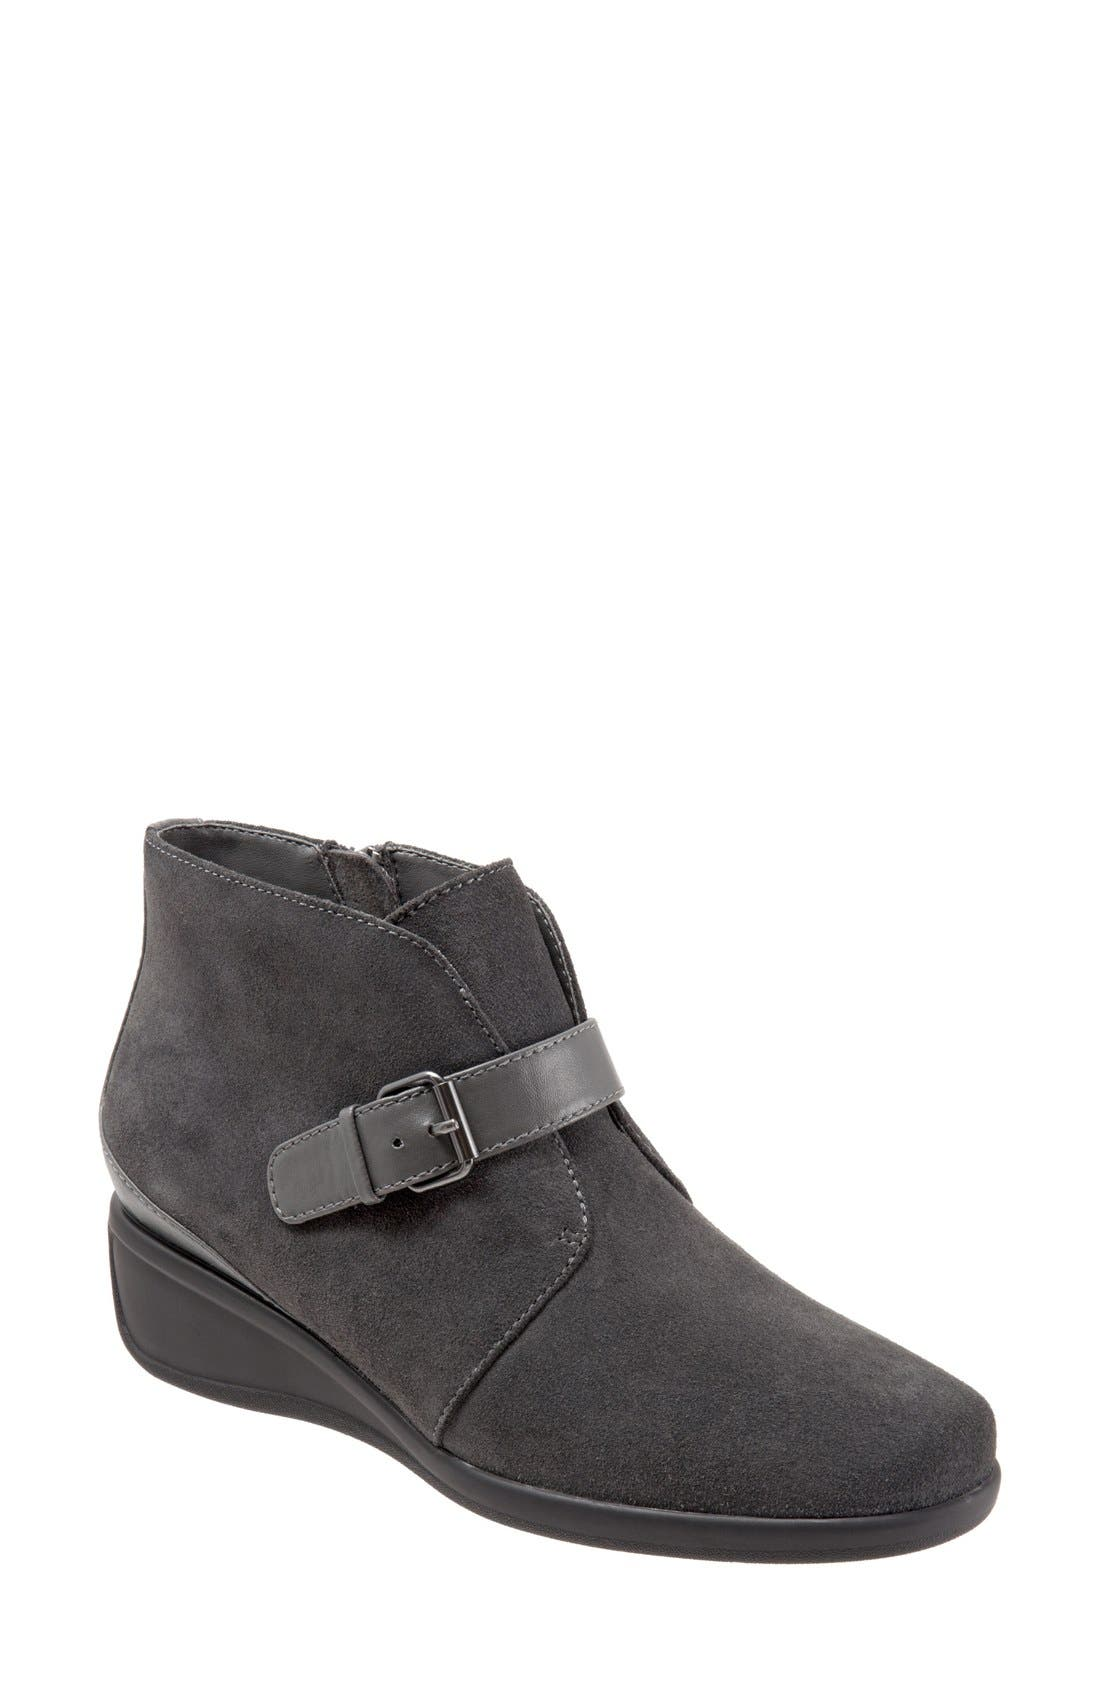 'Mindy' Wedge Bootie,                             Main thumbnail 1, color,                             DARK GREY SUEDE